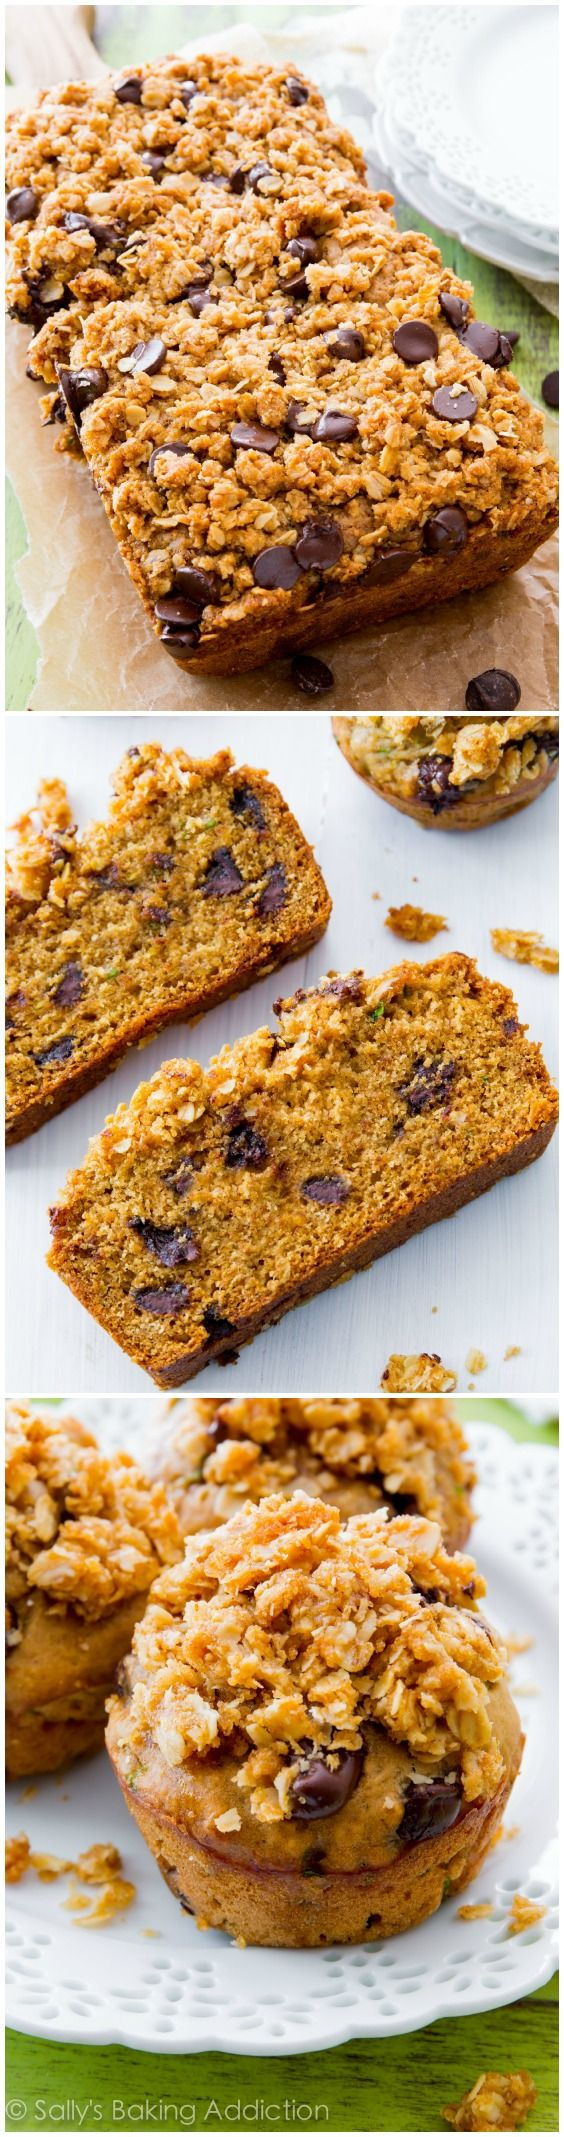 Award-Winning (super moist and simple!) Zucchini Bread & Zucchini Bread Muffins. This family recipe won the Maryland State Fair!